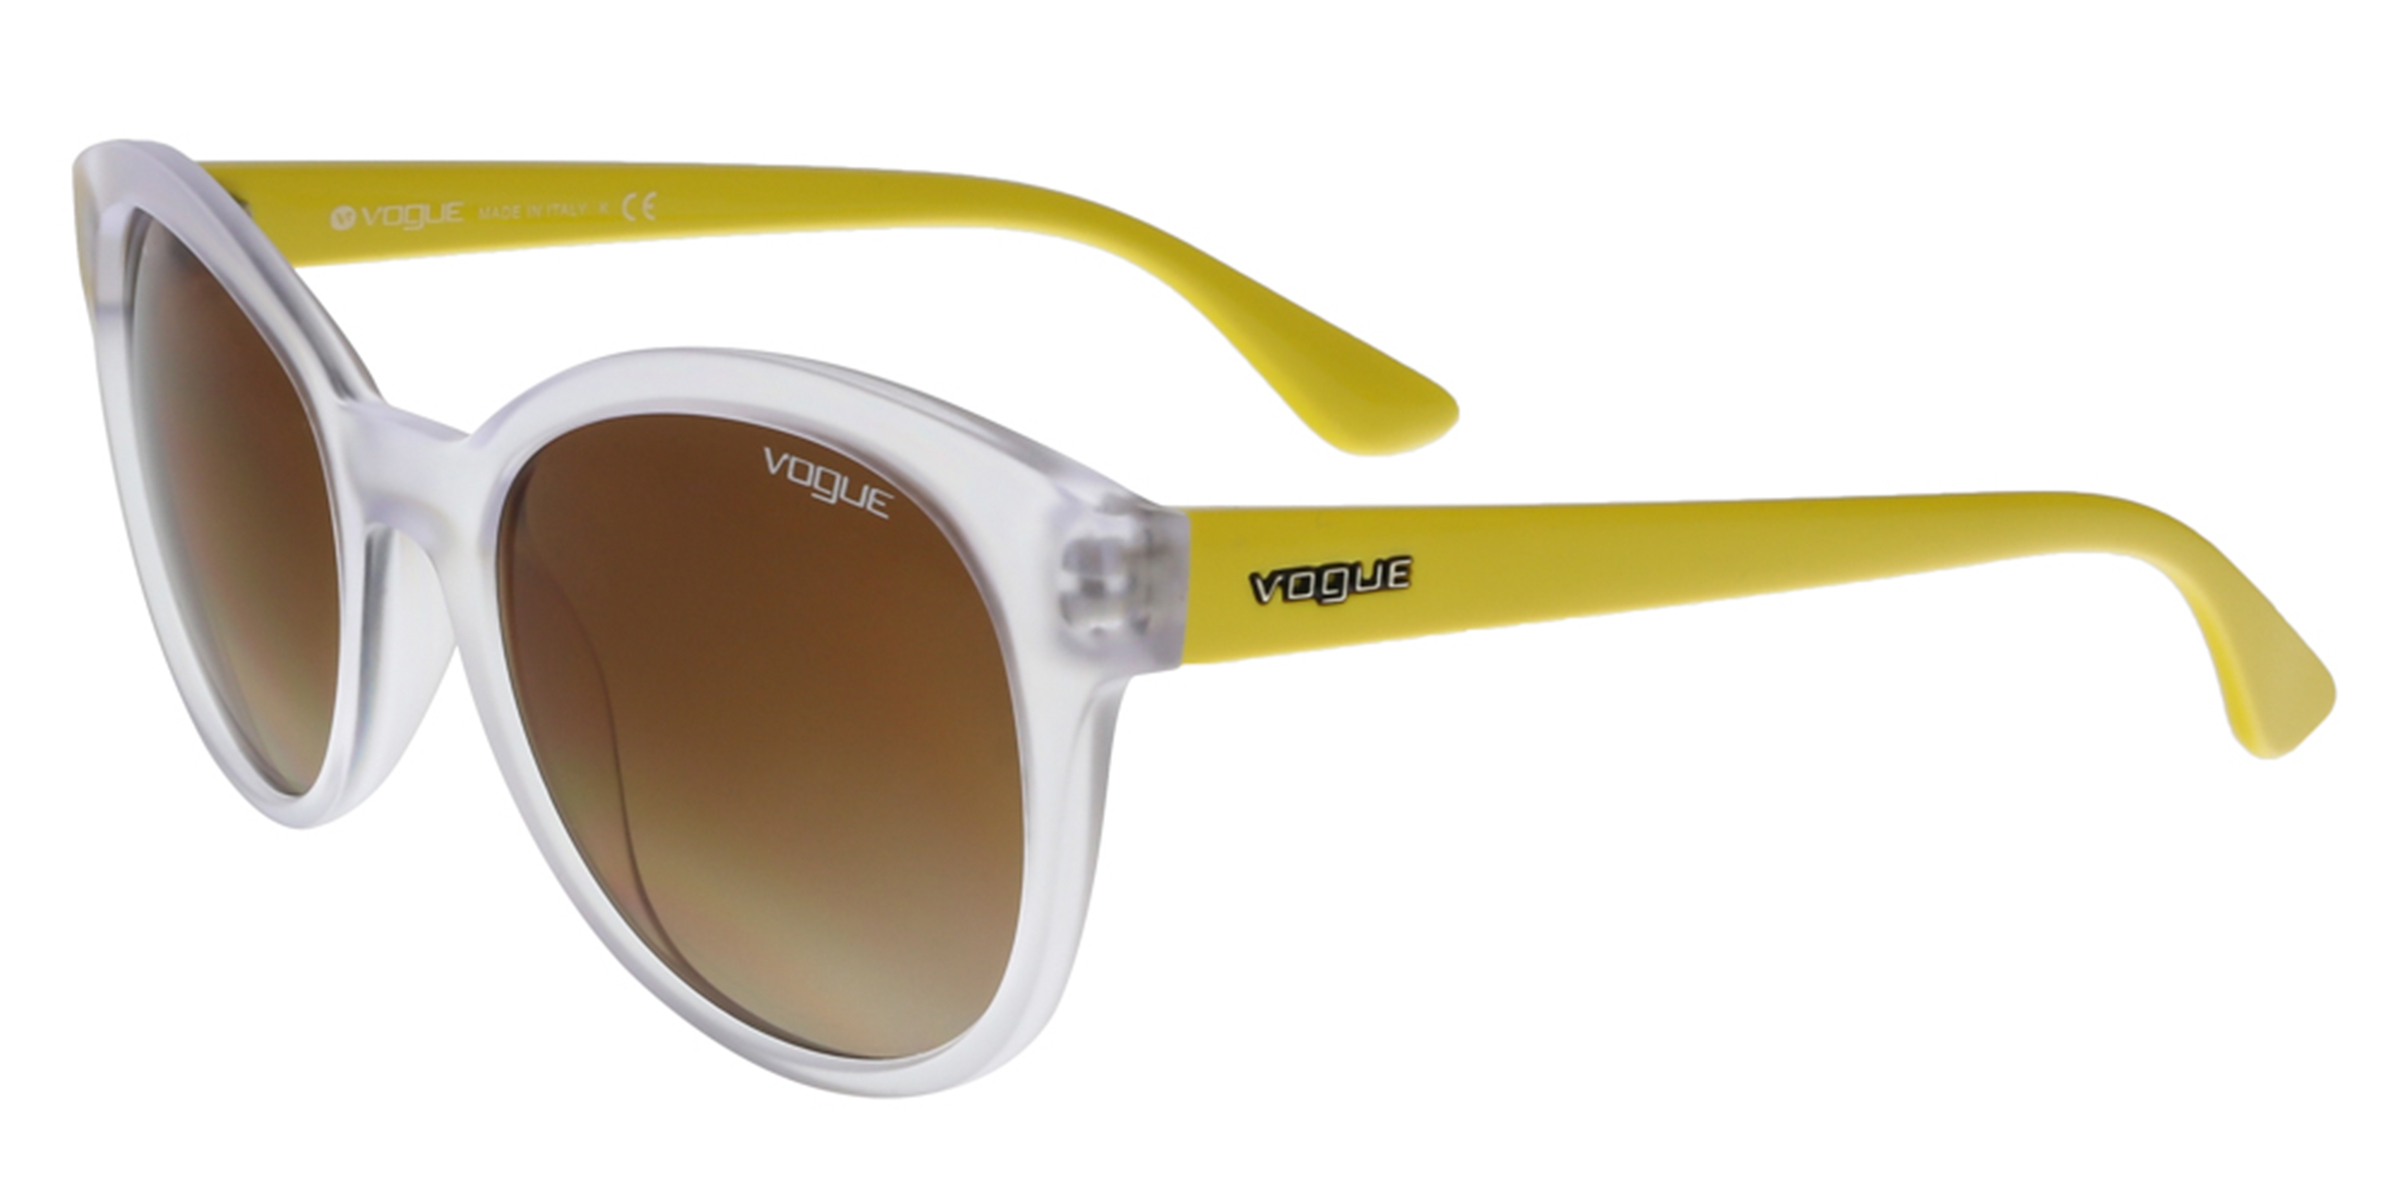 Vogue VO2795/S W74513 Clear/Yellow Round sunglasses Sunglasses